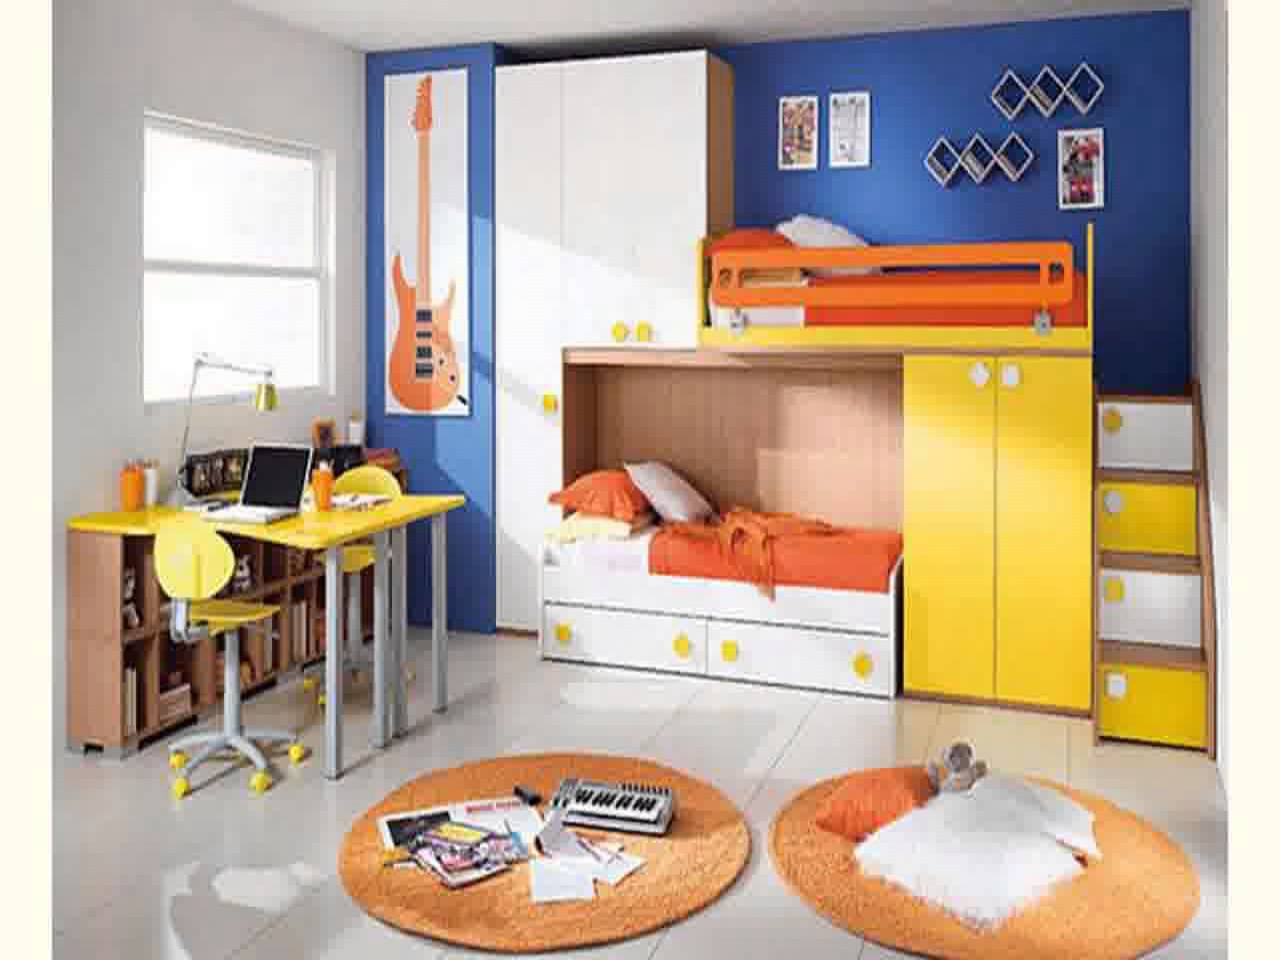 Boys bedroom ideas for small rooms - Kids Bedroom Ideas For Small Rooms Baby Nursery Marvellous Small